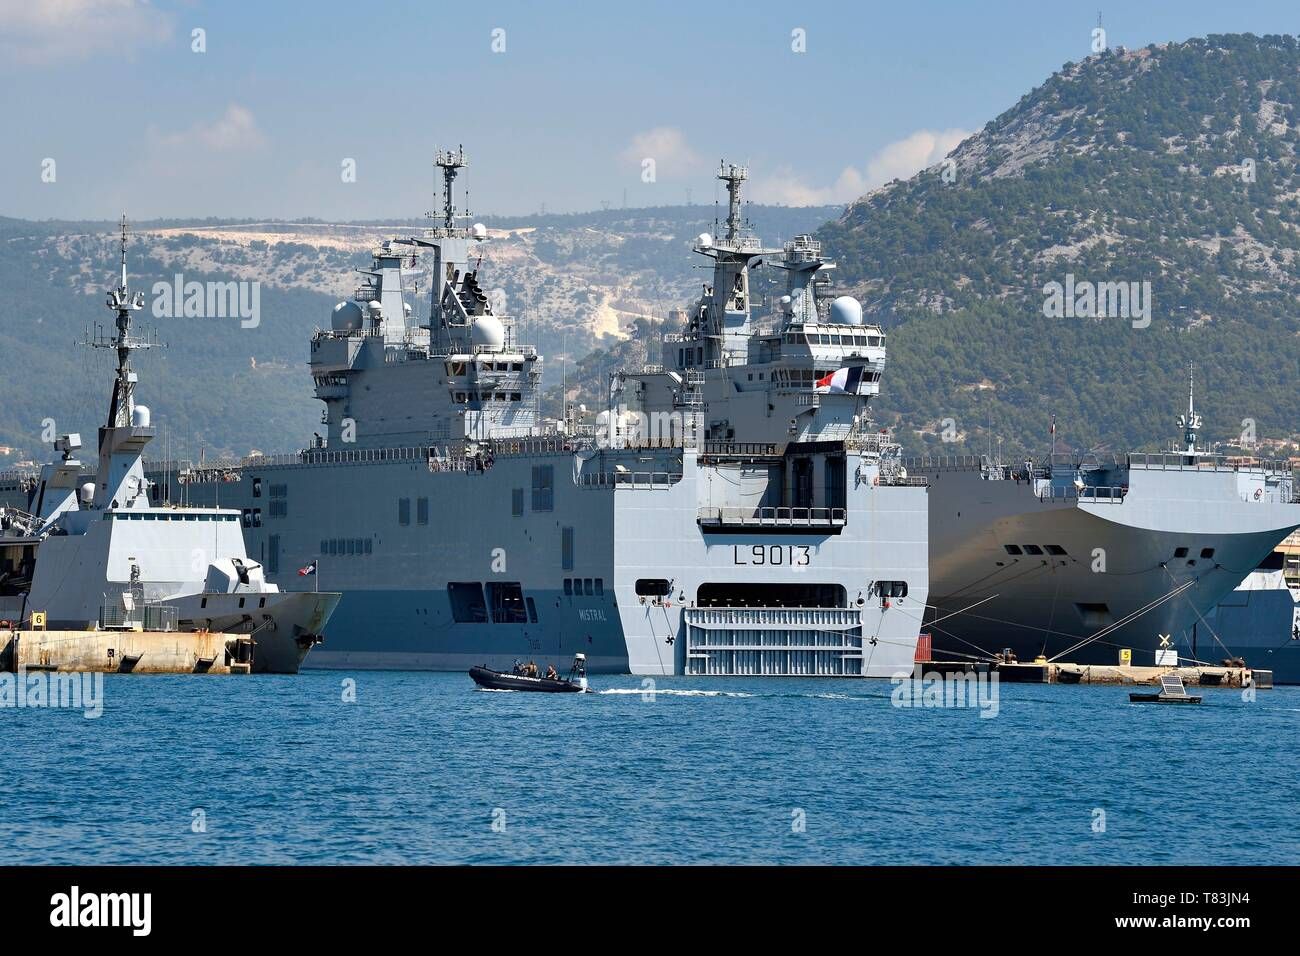 France, Var, Toulon, the naval base (Arsenal), Mistral (L9013) lead ship of the amphibious assault ship, a type of helicopter carrier, of the French Navy Stock Photo